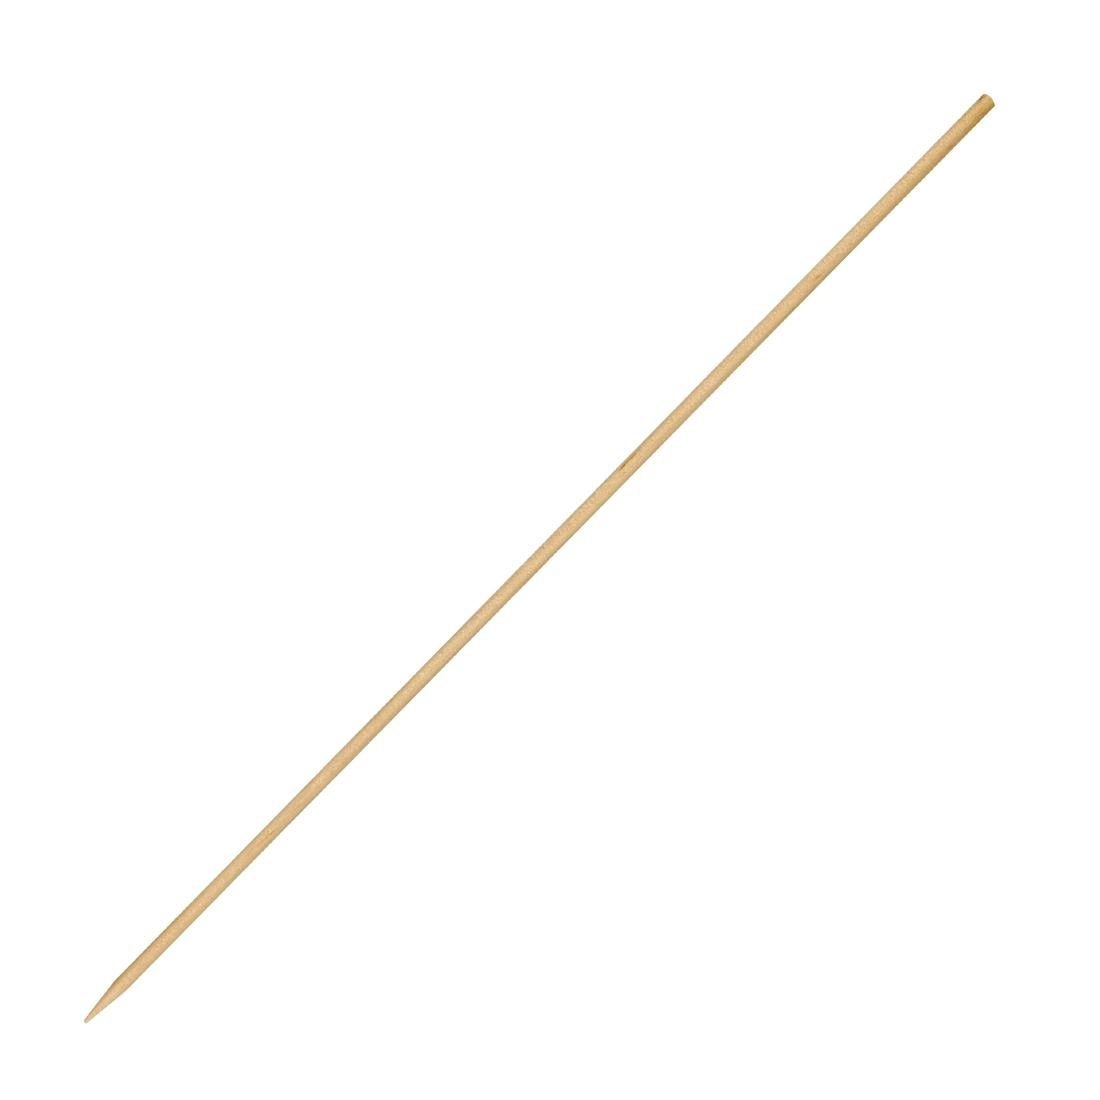 Disposable Wooden Skewers 7 Inch Pack of 200